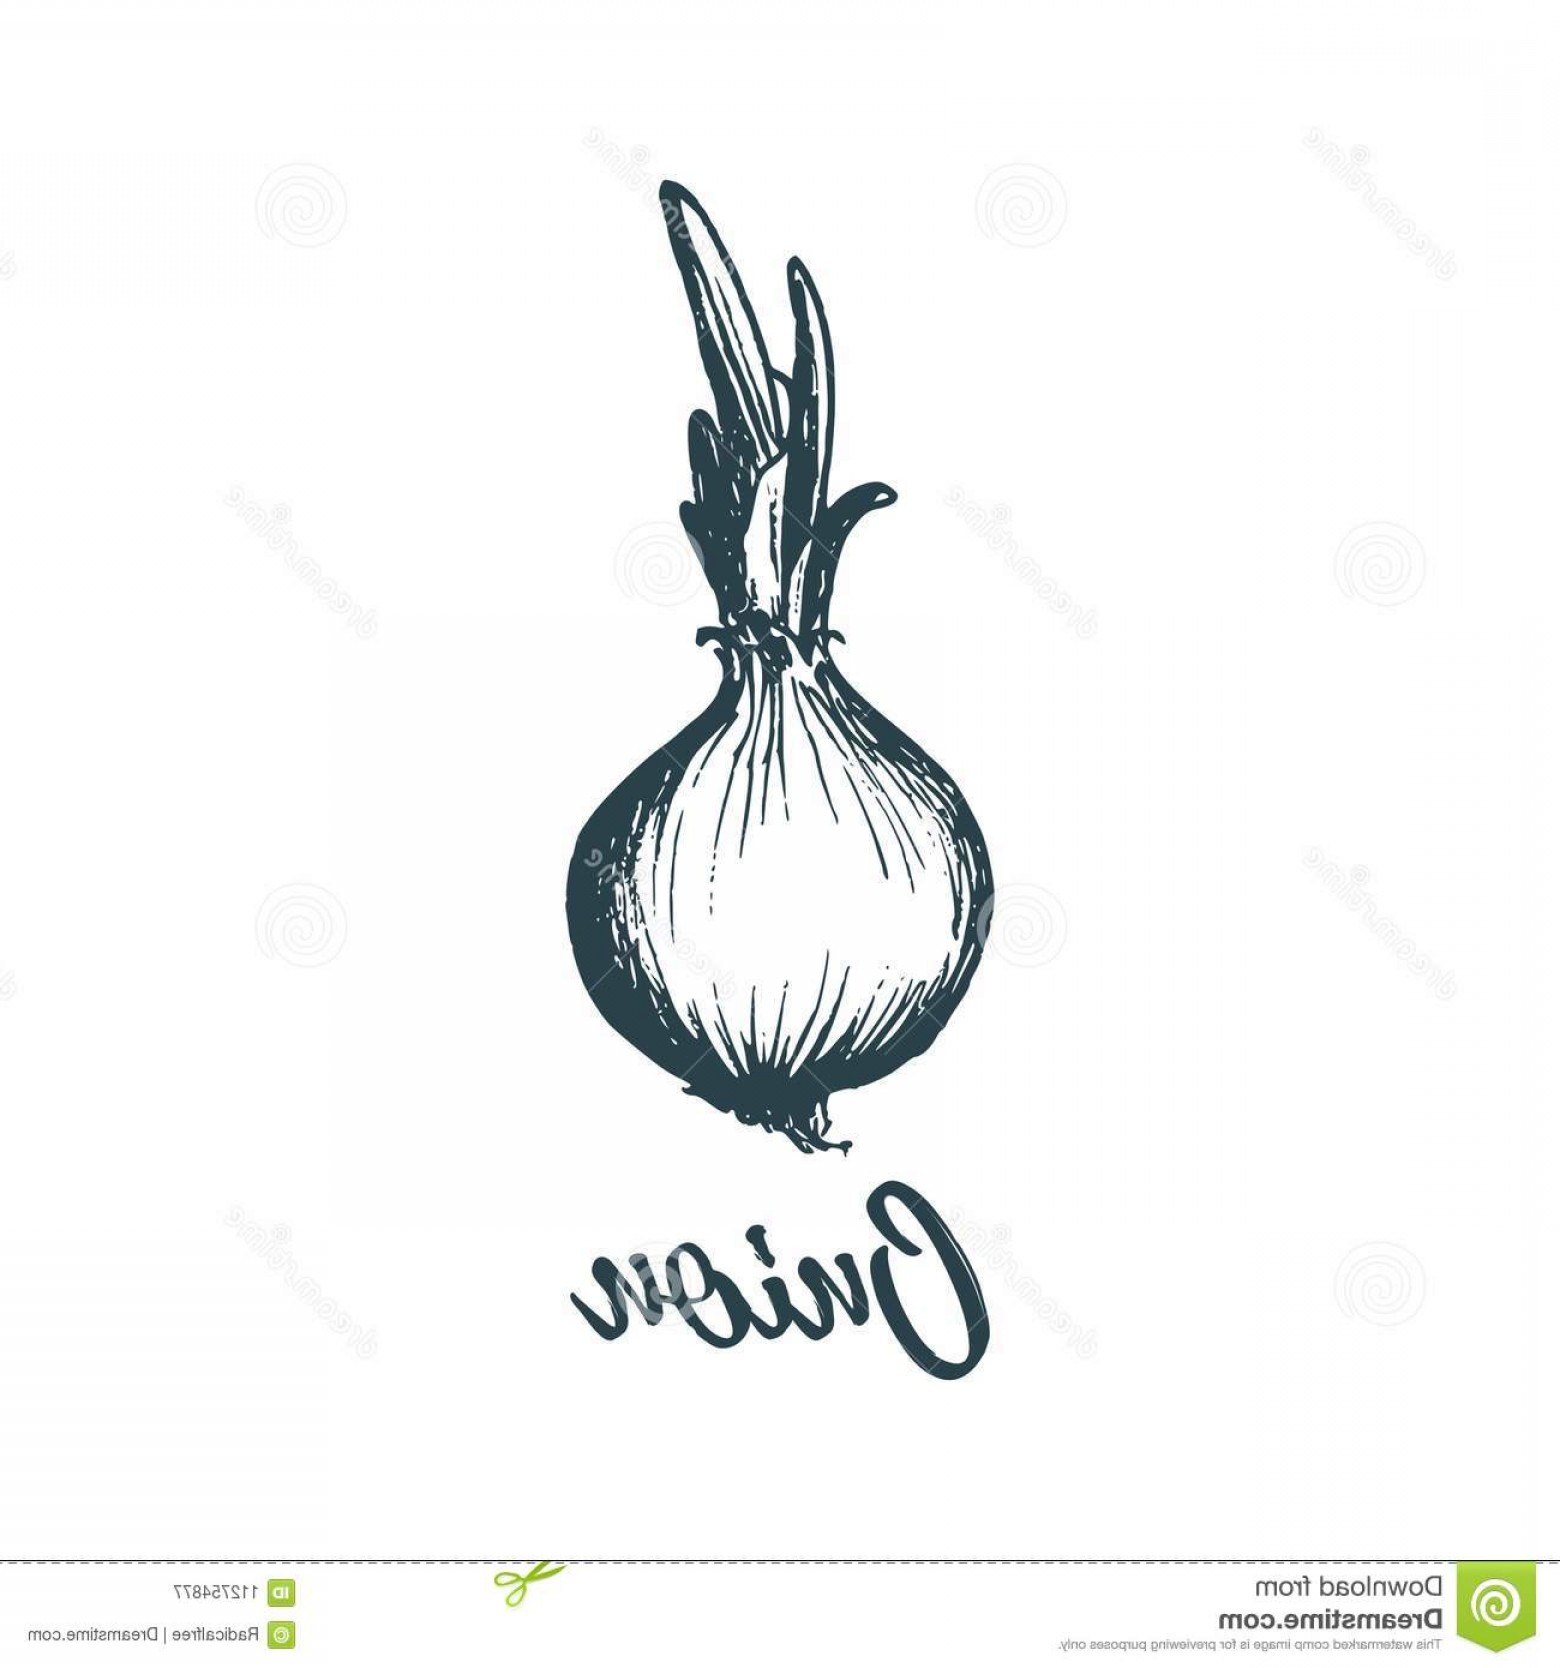 Onion Vector: Hand Drawn Onion Vector Illustration Vegetarian Food Sketch Farm Market Product Hand Drawn Onion Vector Illustration Image